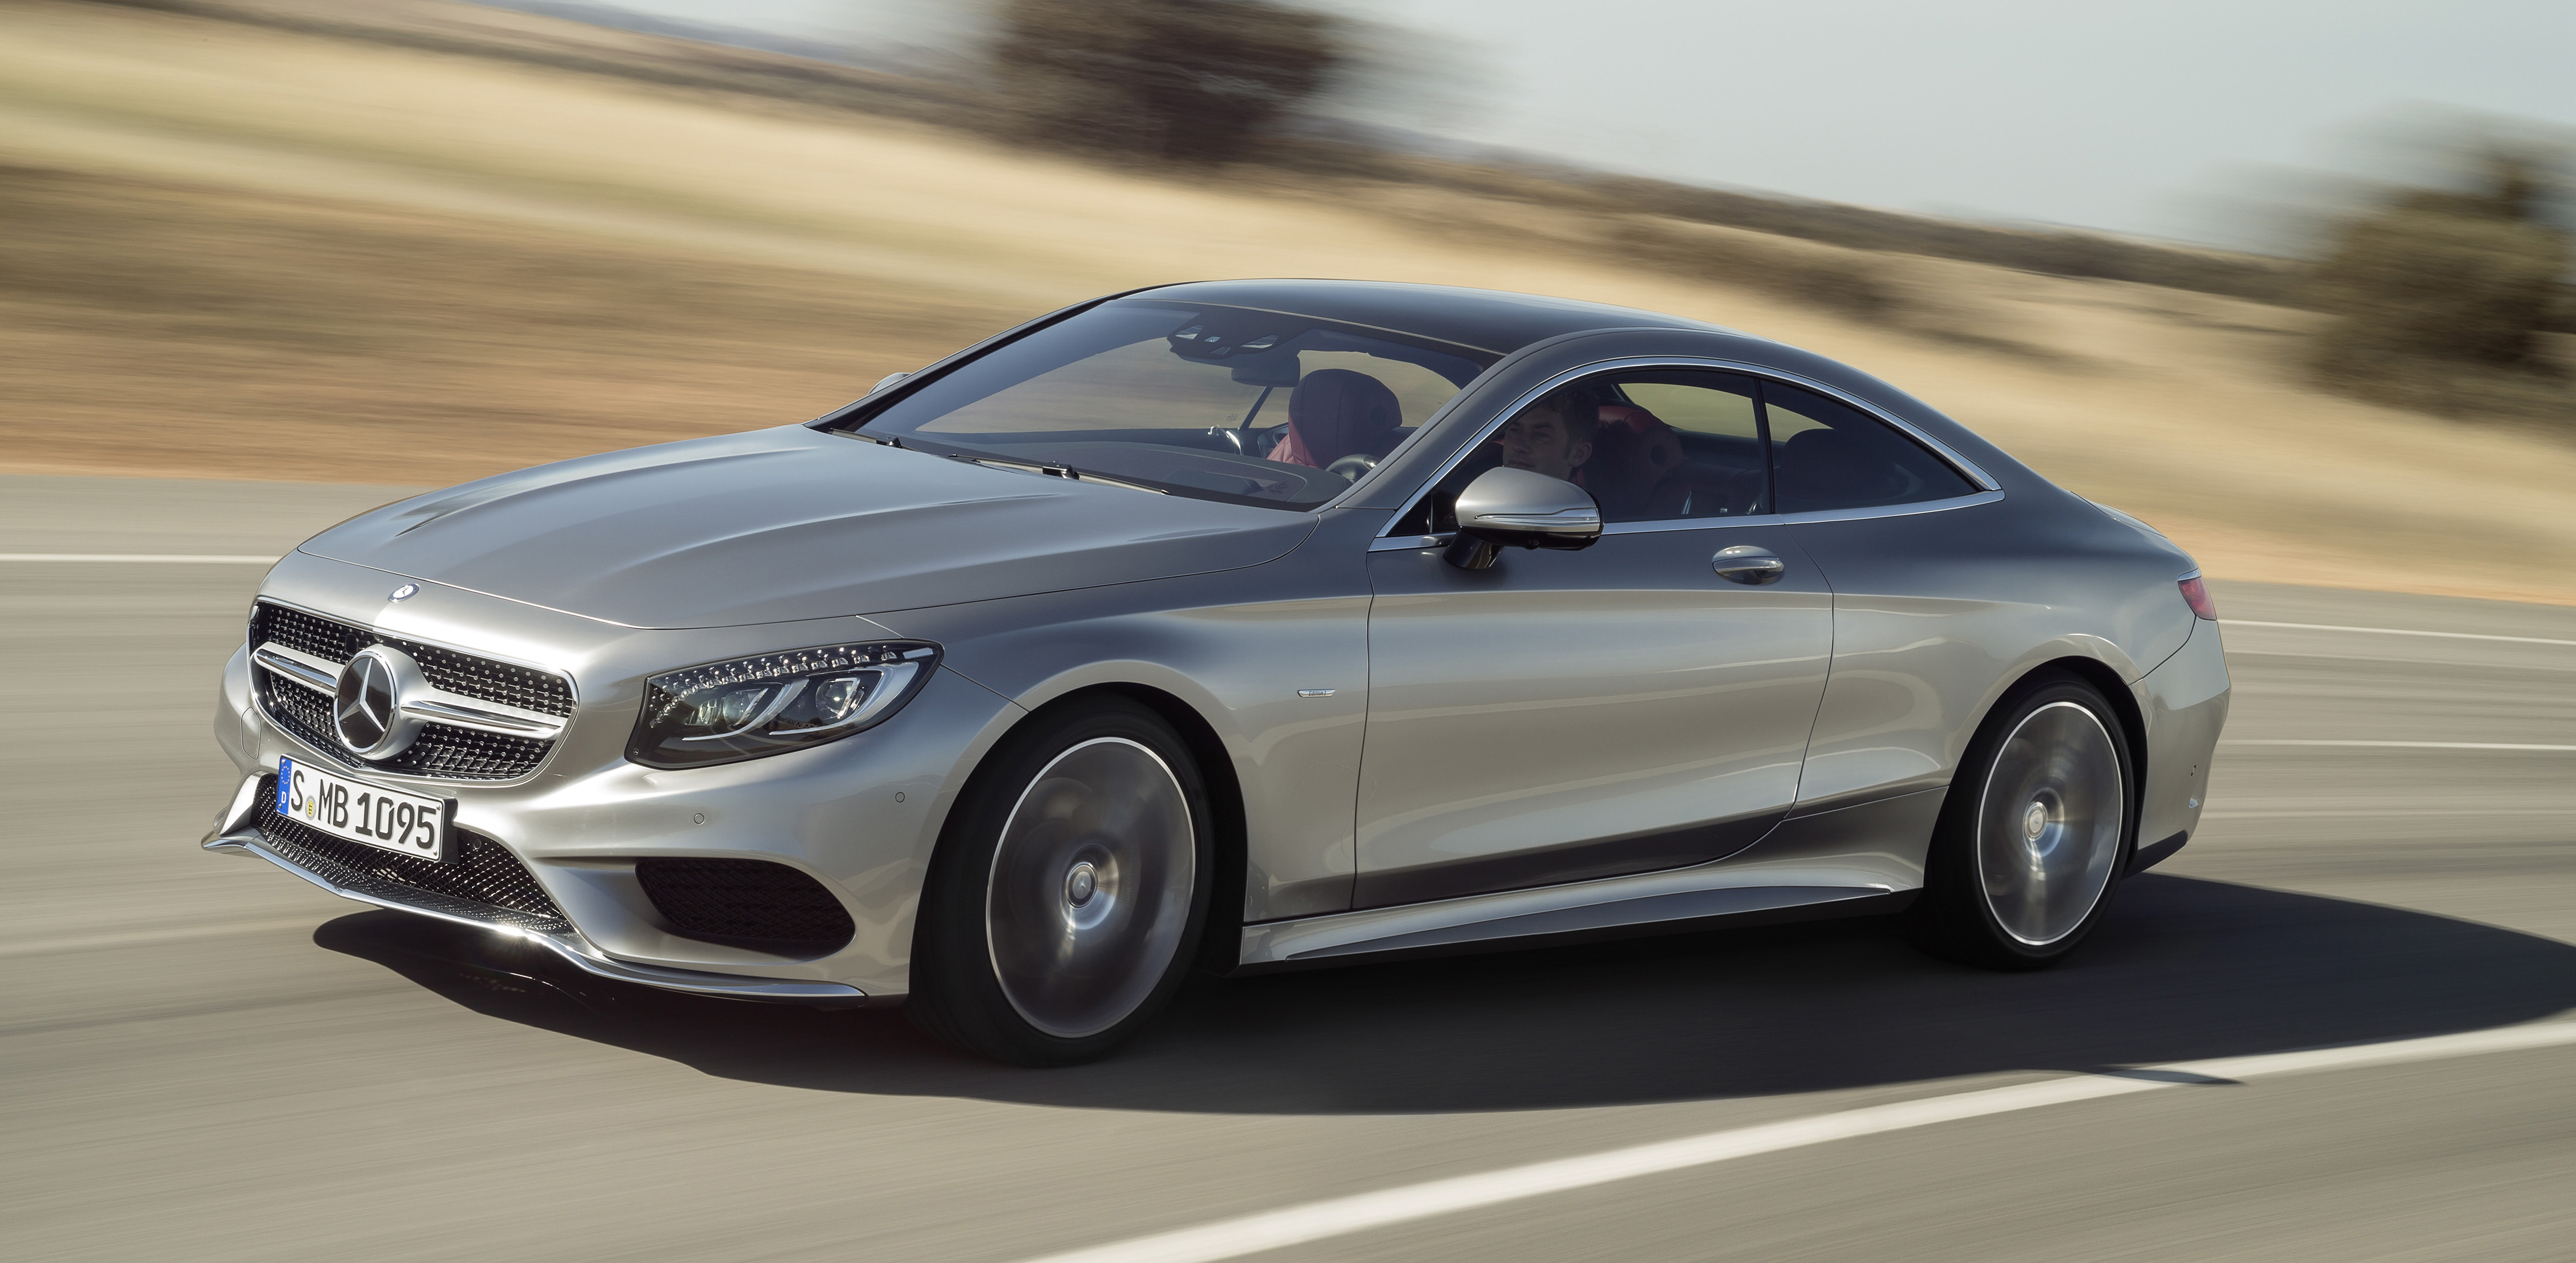 Mercedes benz s class coupe crystal clear details image for Mercedes benz s550 4matic 2014